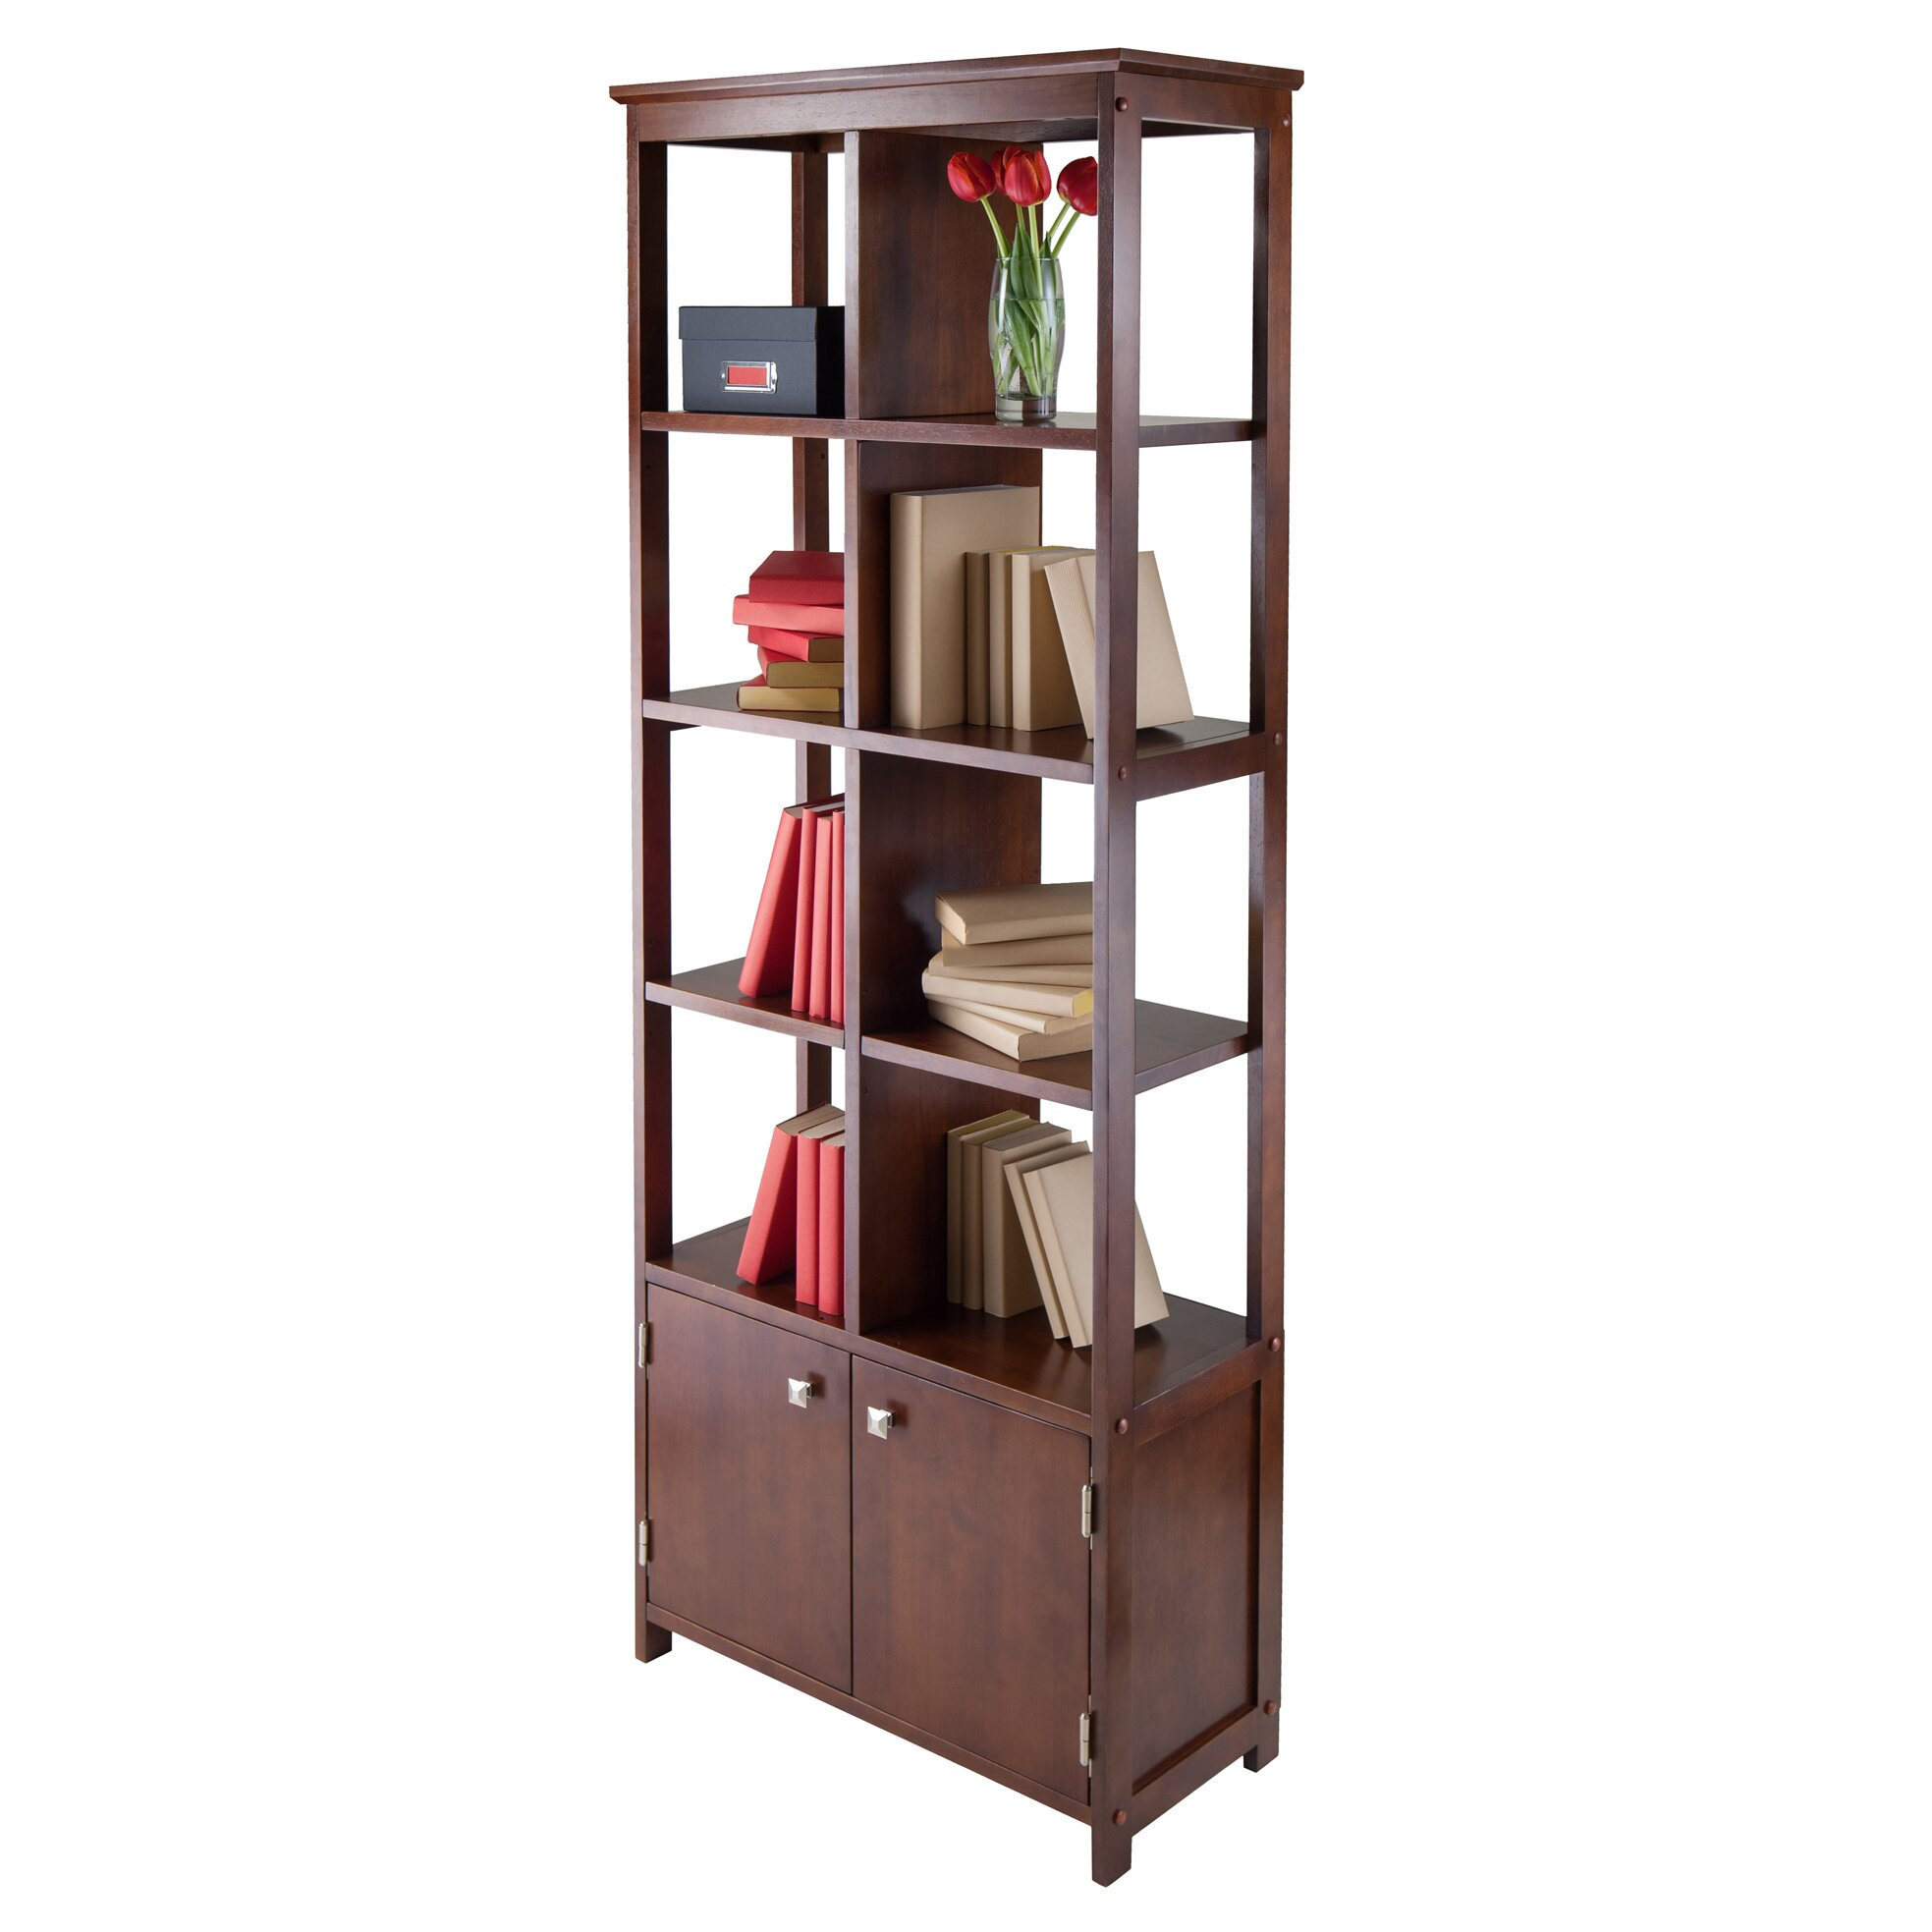 luxury home 68 etagere bookcase. Black Bedroom Furniture Sets. Home Design Ideas